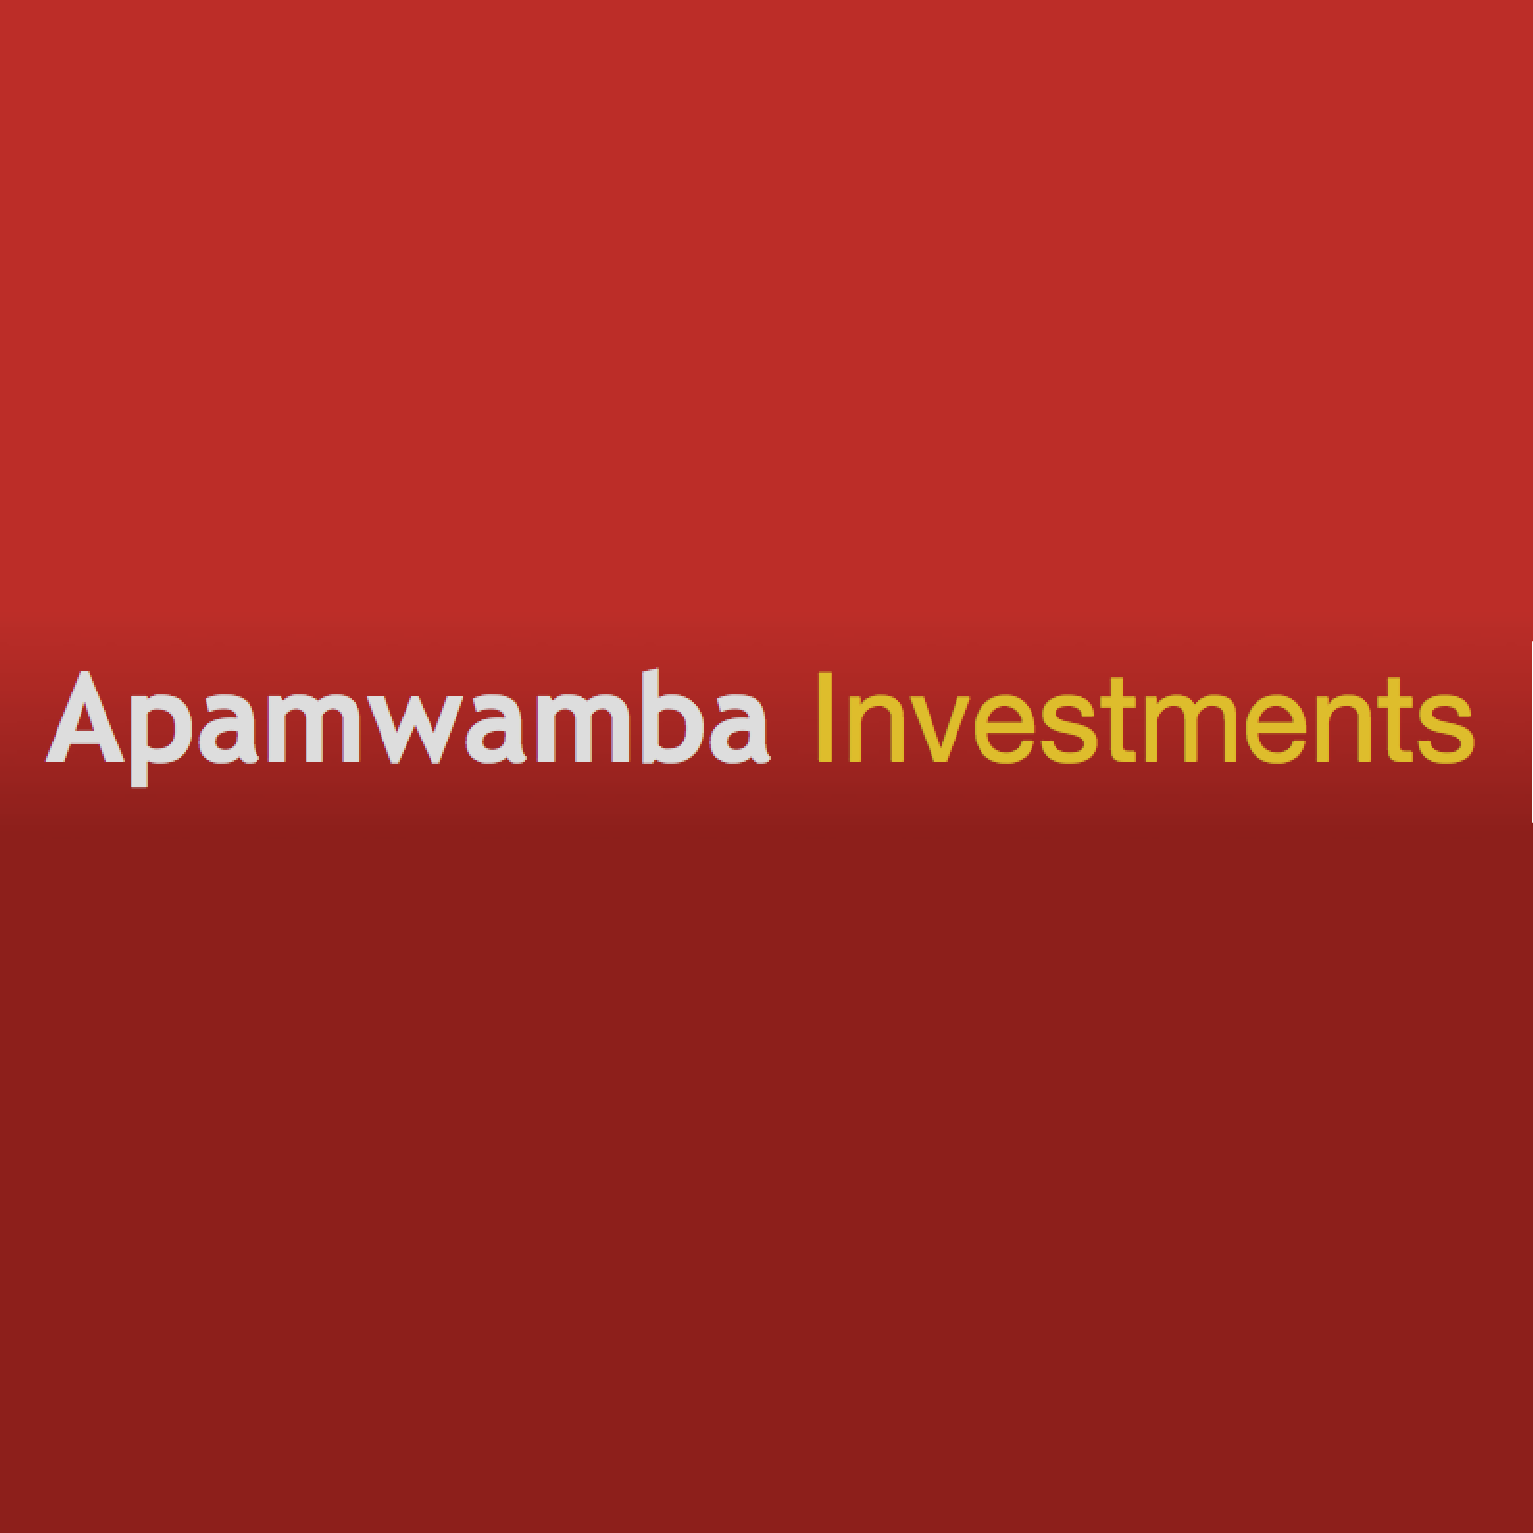 Apamwamba Investment